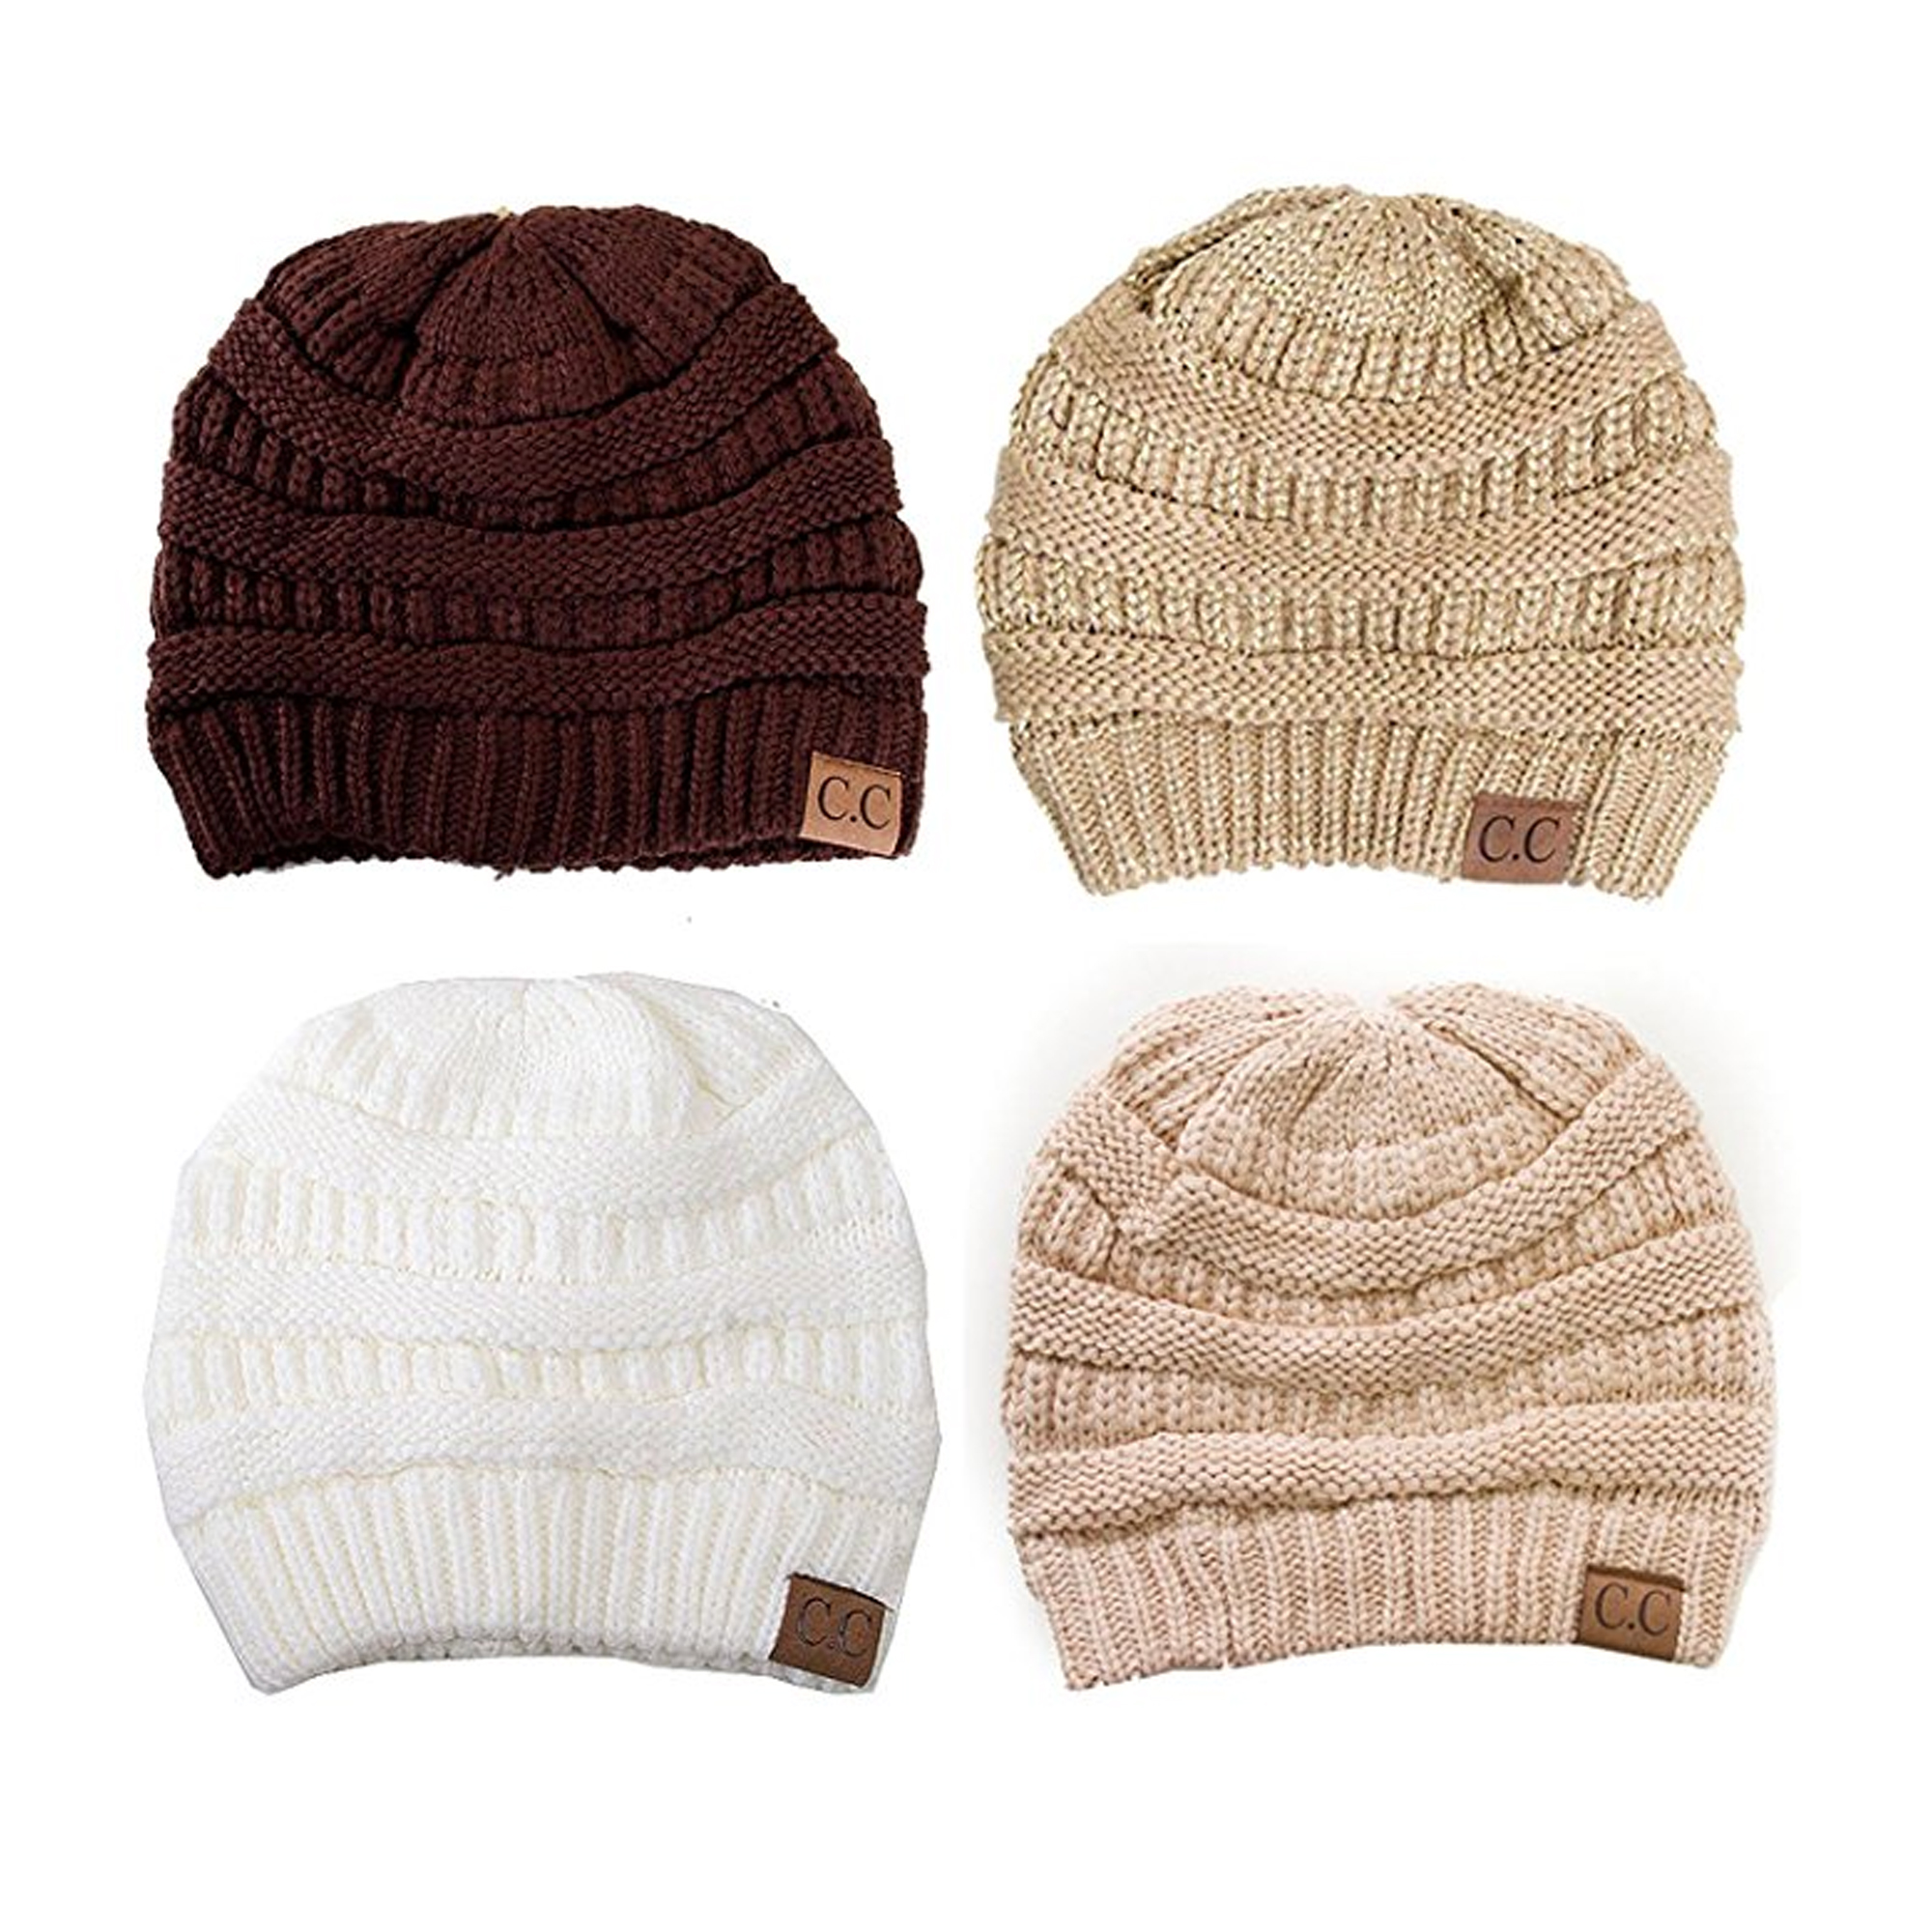 Trendy Warm Chunky Soft Stretch Cable Knit Slouchy Beanie Skully HAT20A (One Size,   3 Pack- Burgundy/Dark Olive/Black )